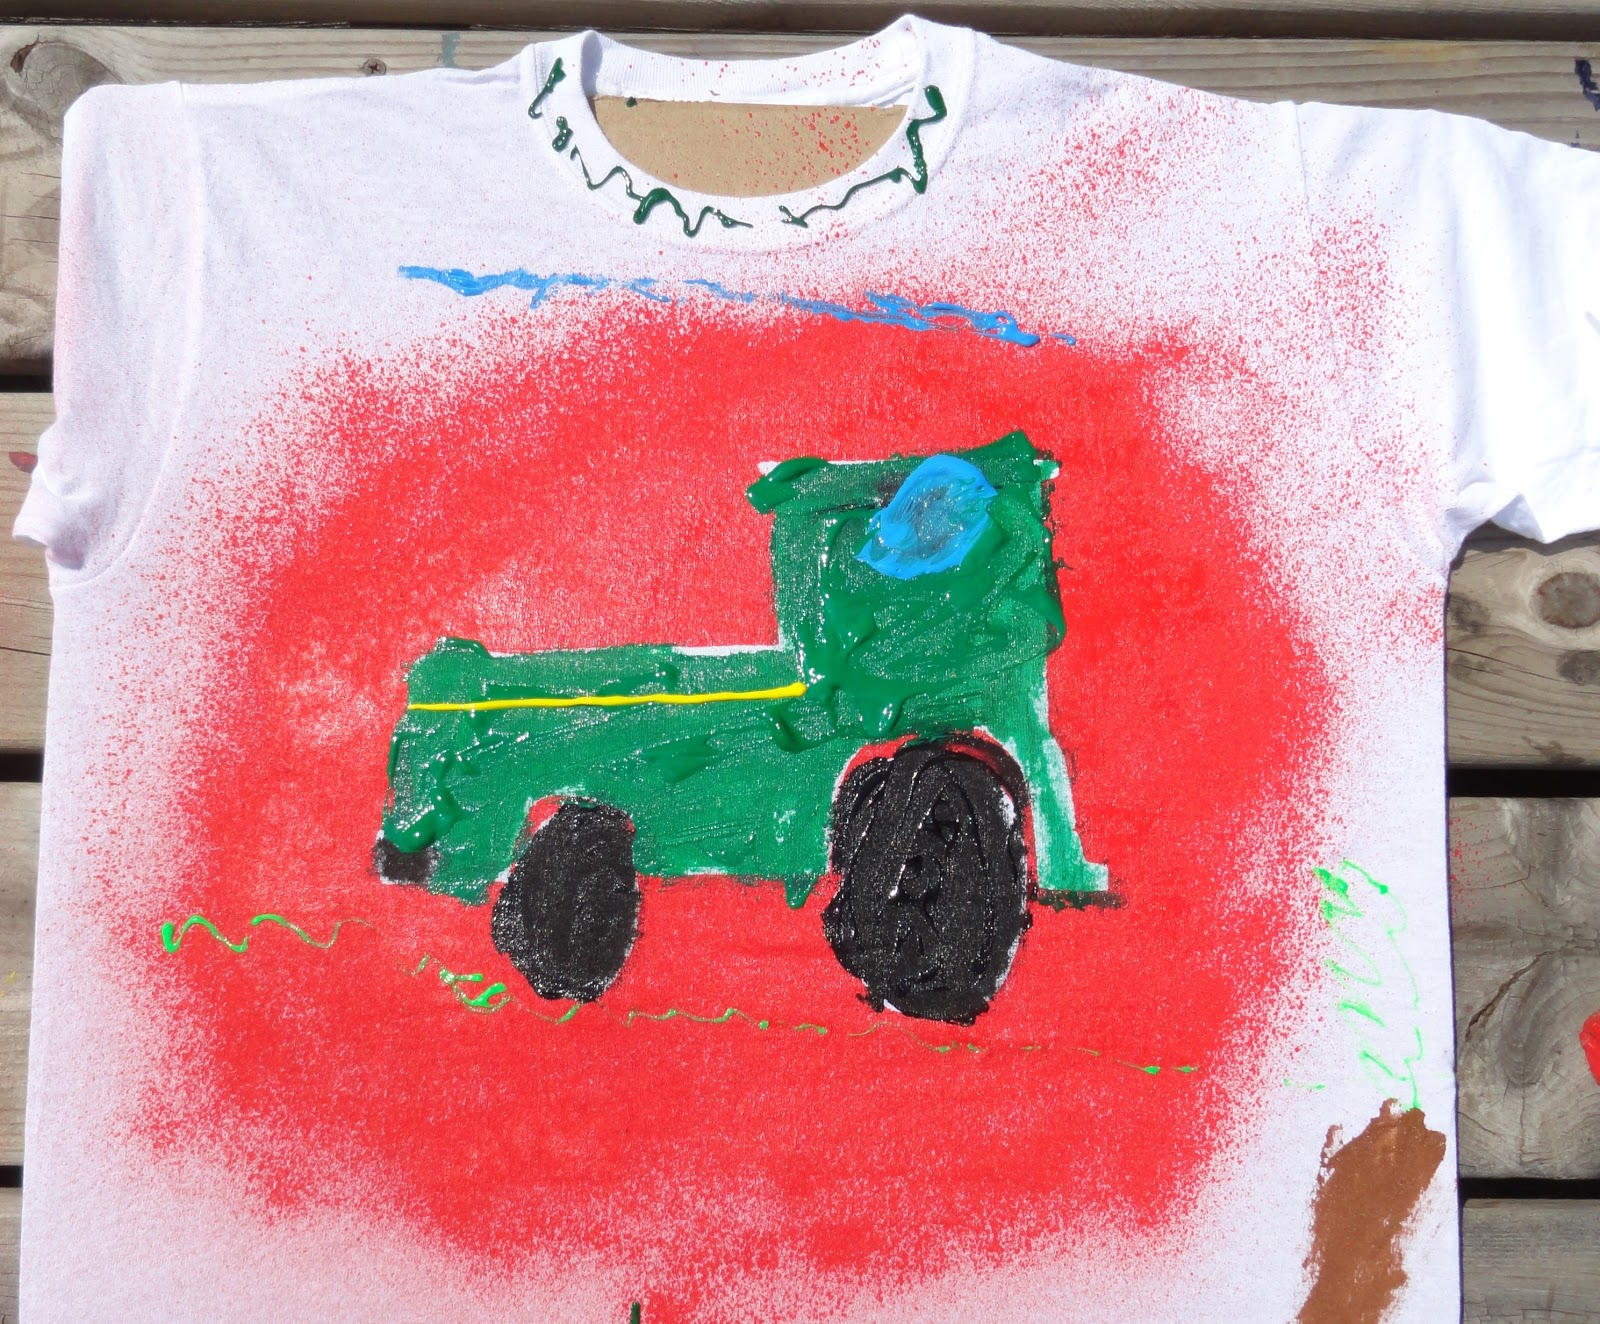 Spray Paint T Shirt Ideas Part - 43: Put A Large Piece Of Cardboard Inside A Plain White (or Colored) T-shirt  And Use Puffy Paint And Spray Fabric Paint To Decorate The Shirts With The  Kids!